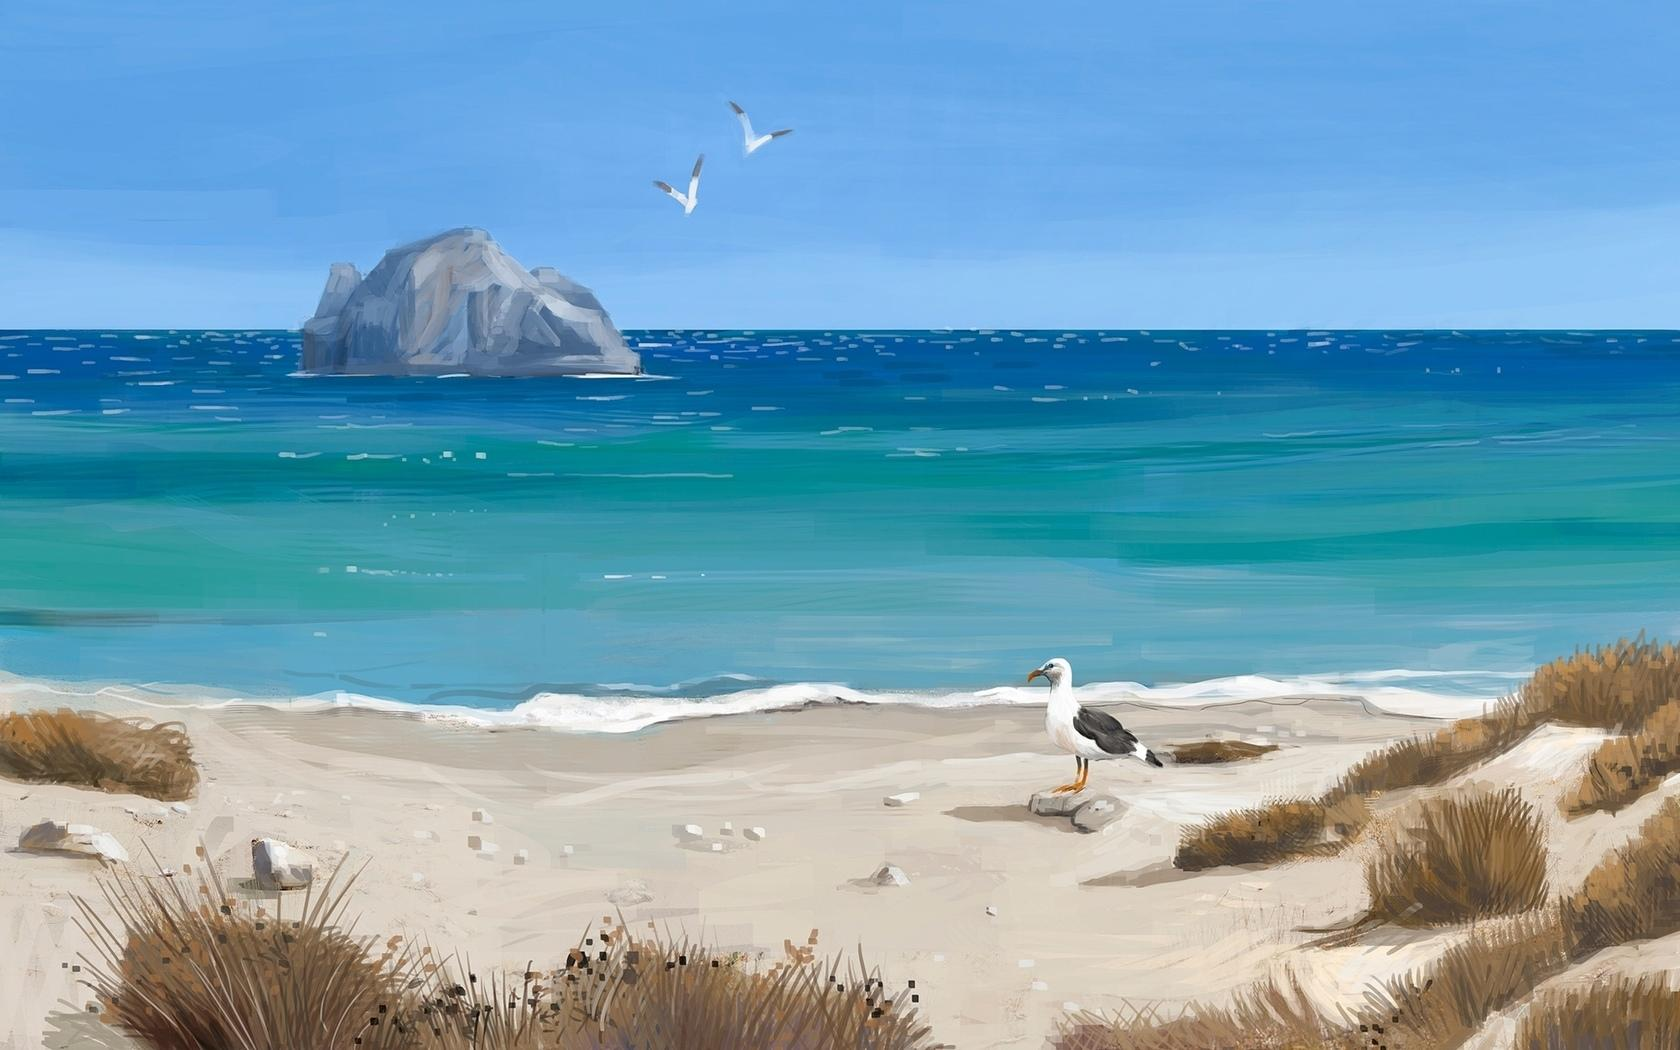 Beach Artistic wallpapers HD quality